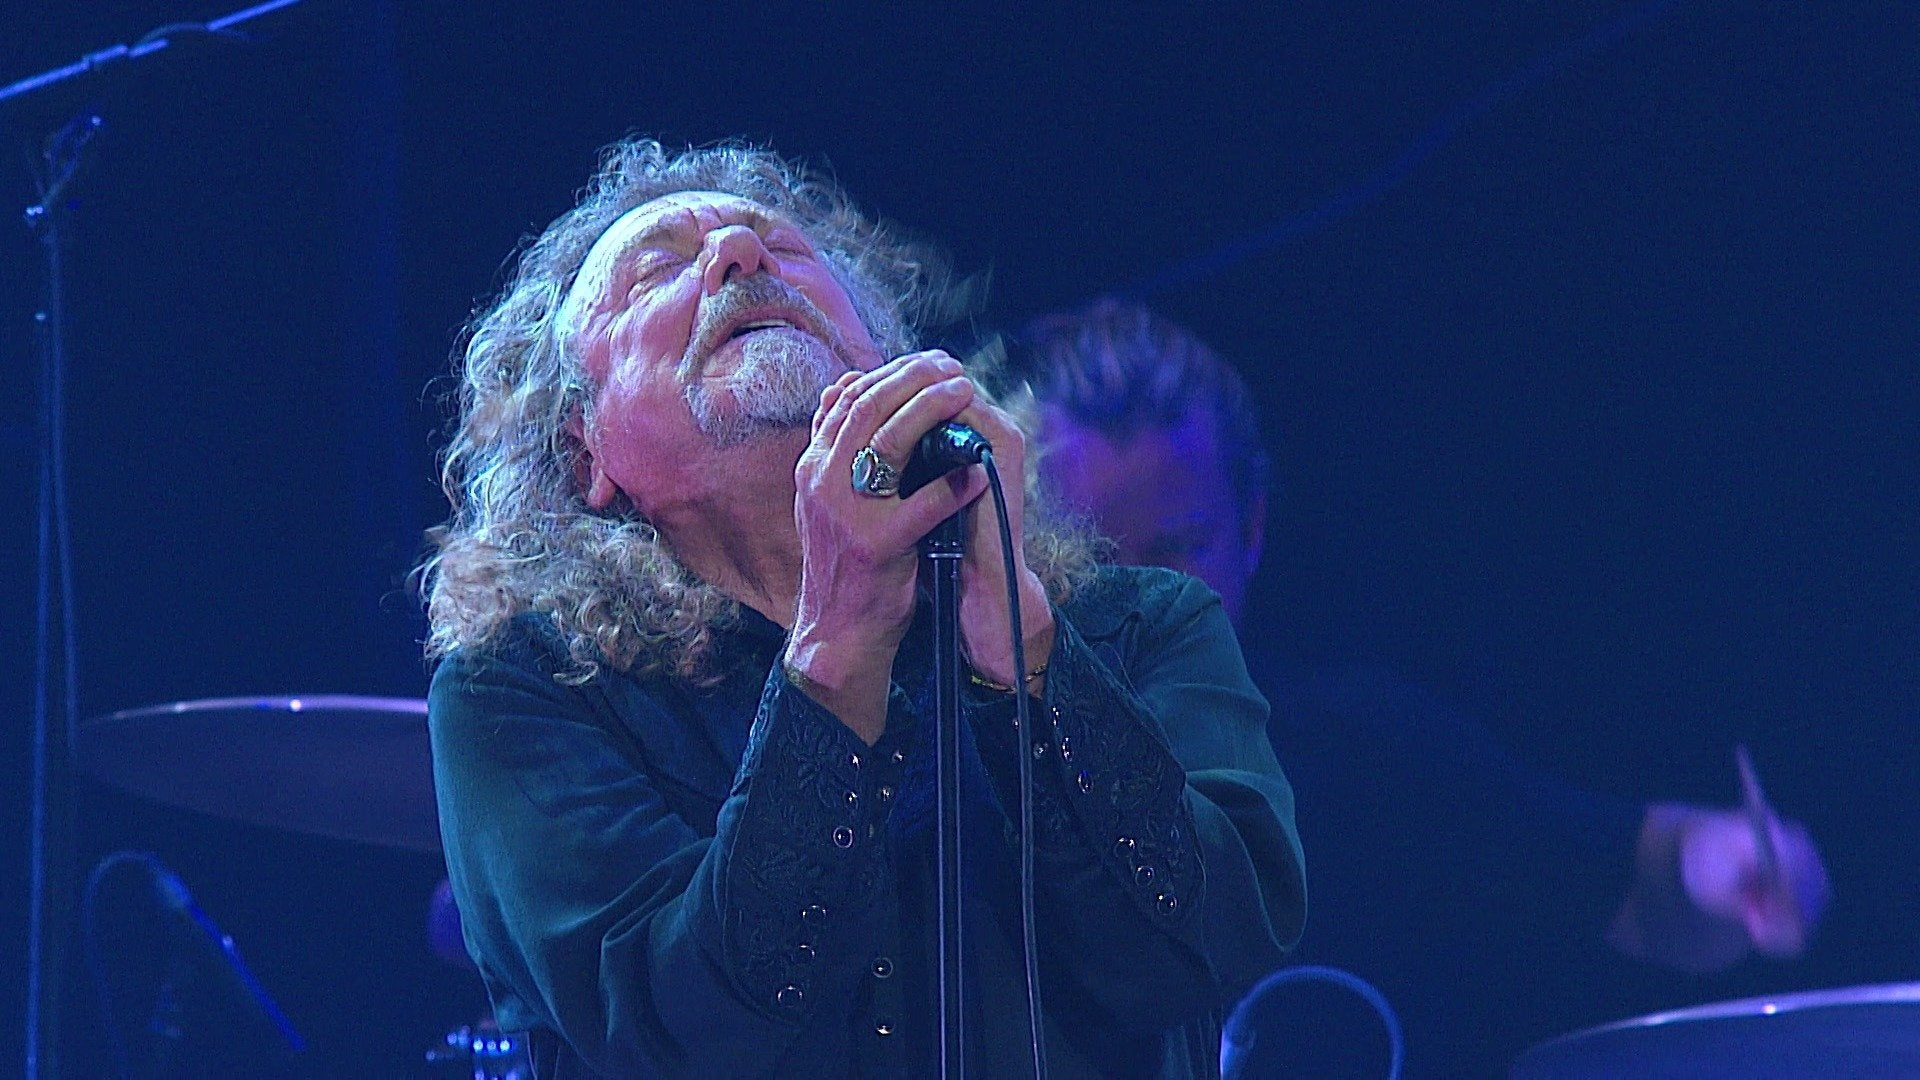 Robert Plant & The Sensational Space Shifters - Live at David Lynch's Festival of Disruption